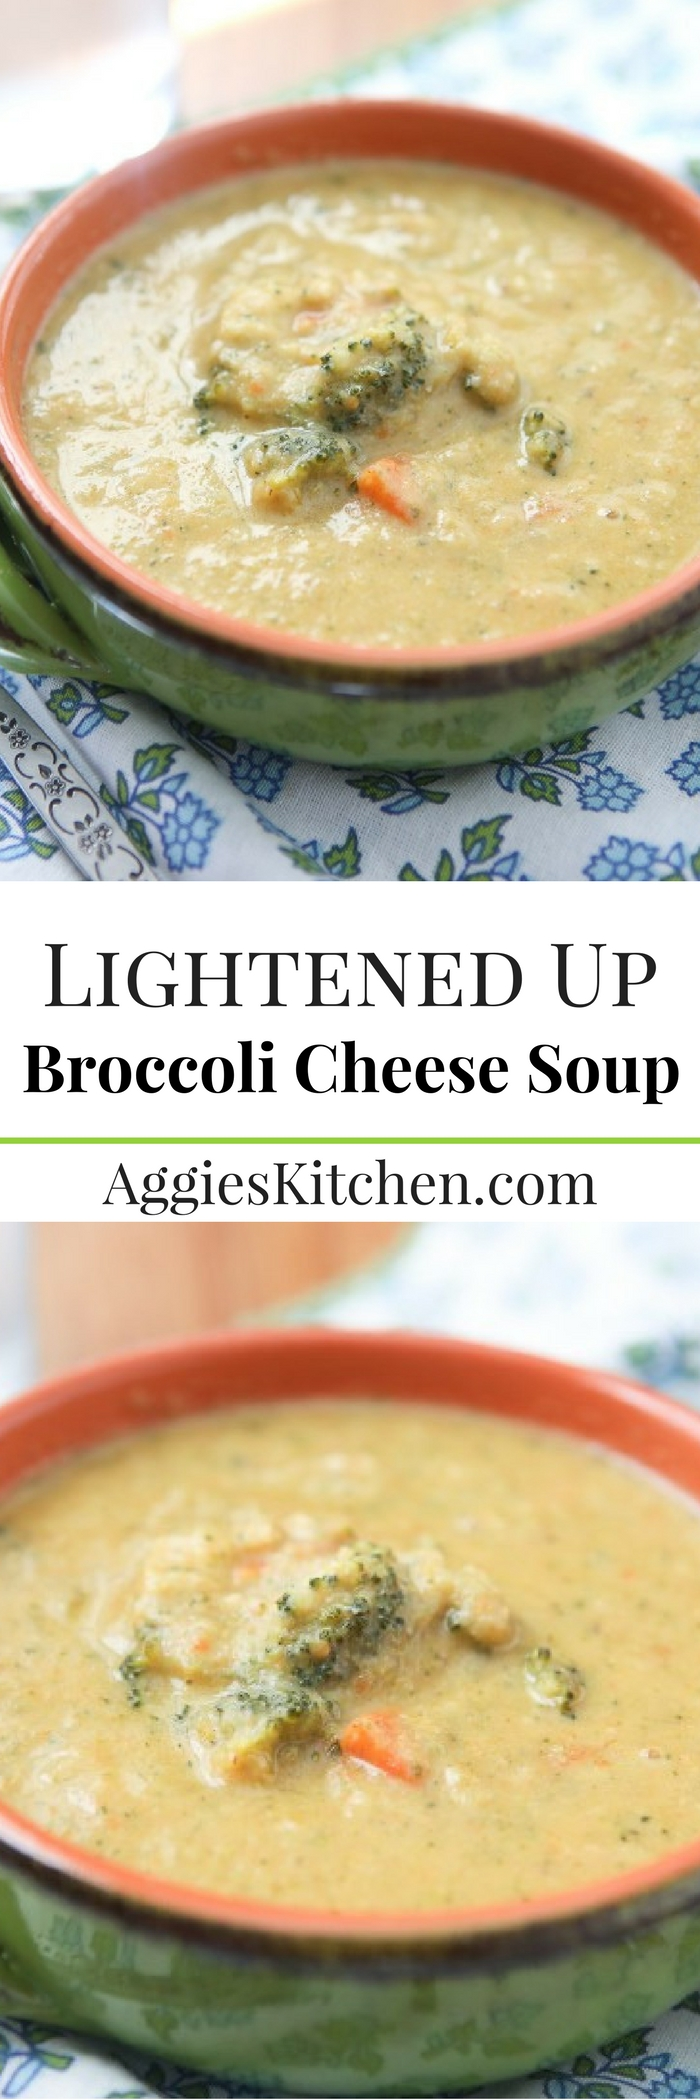 Filled with lots of veggies, this Broccoli Cheese Soup hits the spot (and is lighter than most creamy soups!)